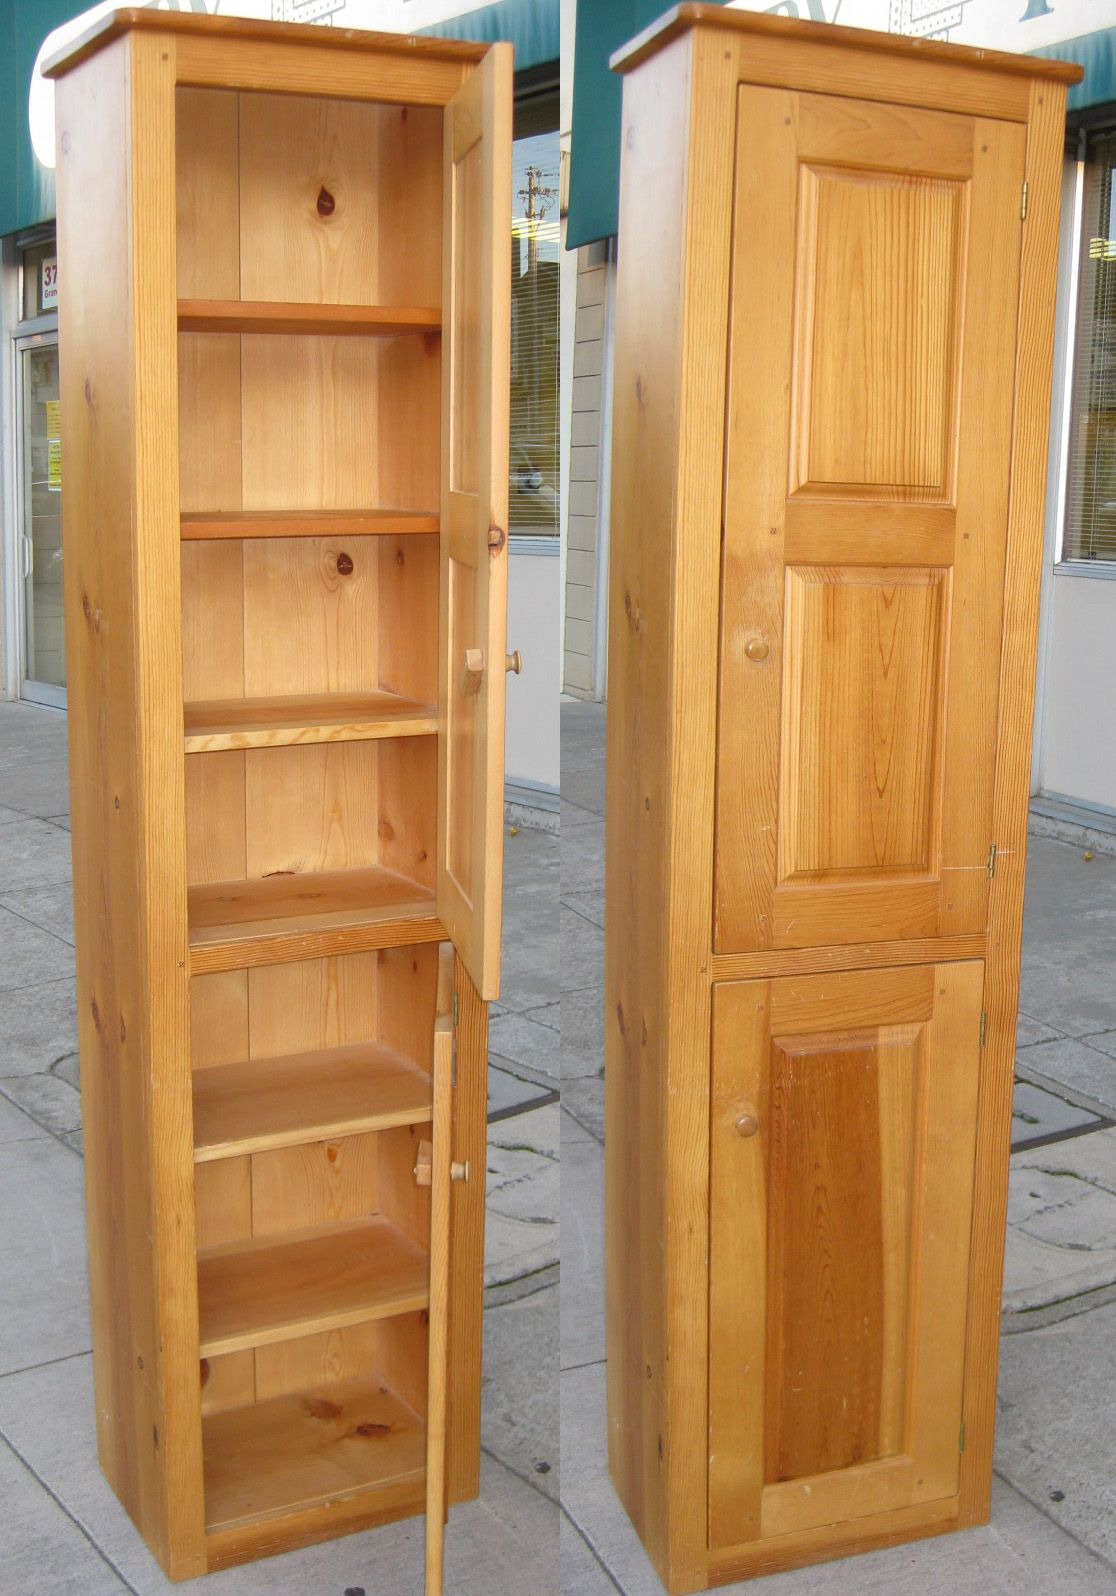 Small Cabinet with Doors Best Of Tall Narrow Cabinet with Doors